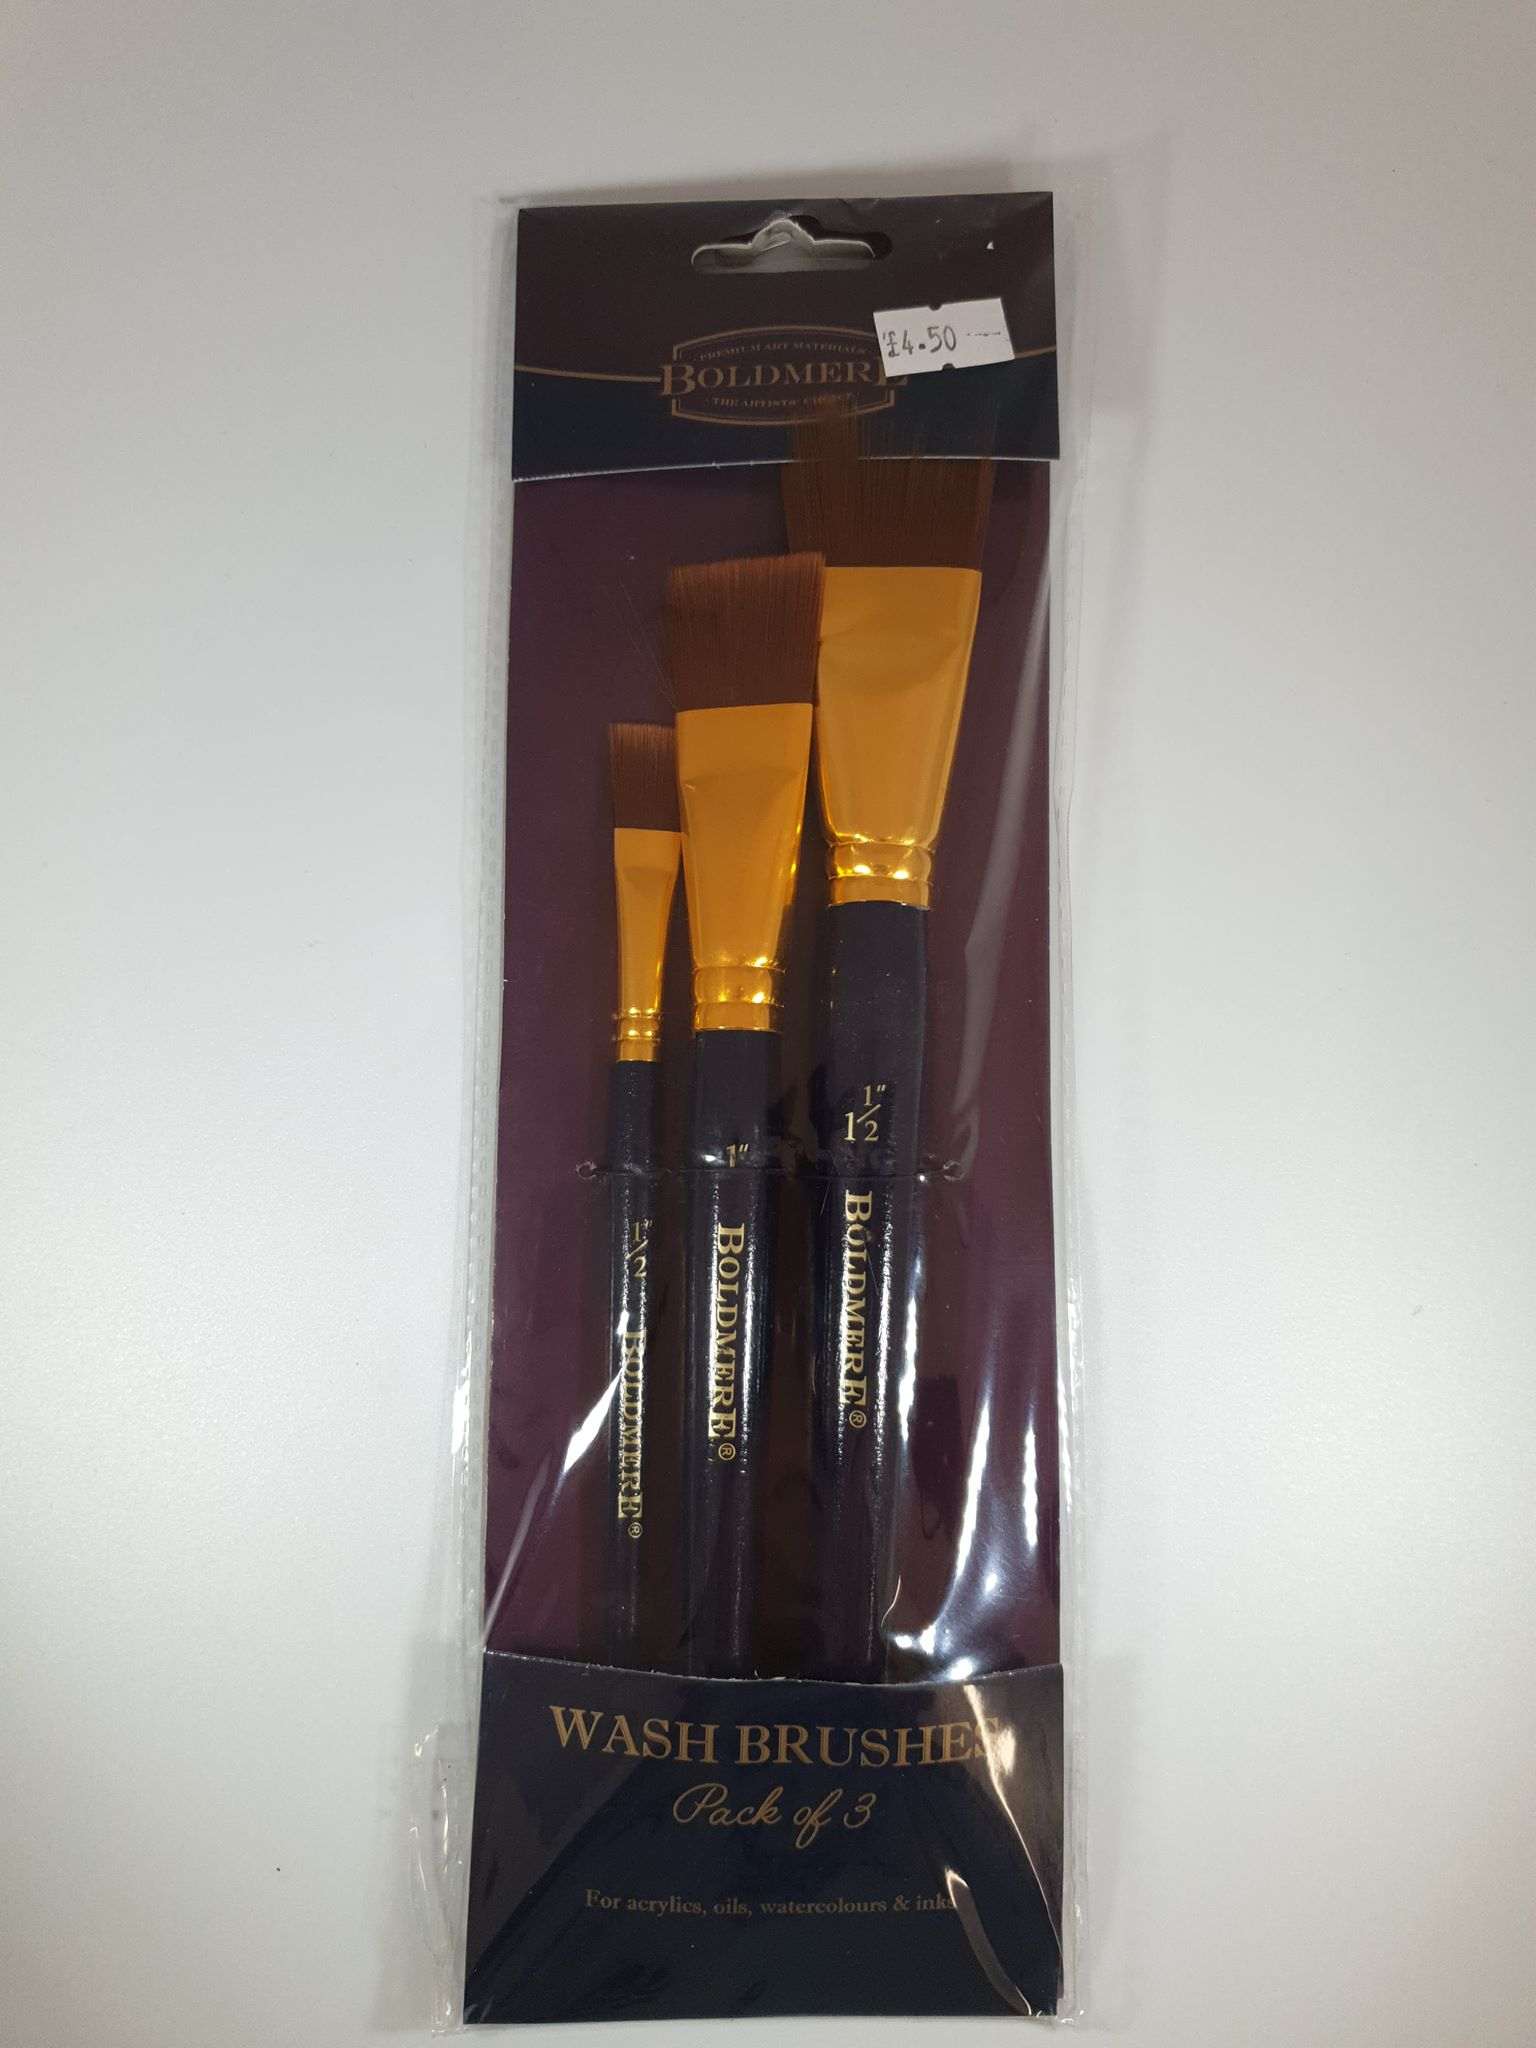 Boldmere Wash Brushes